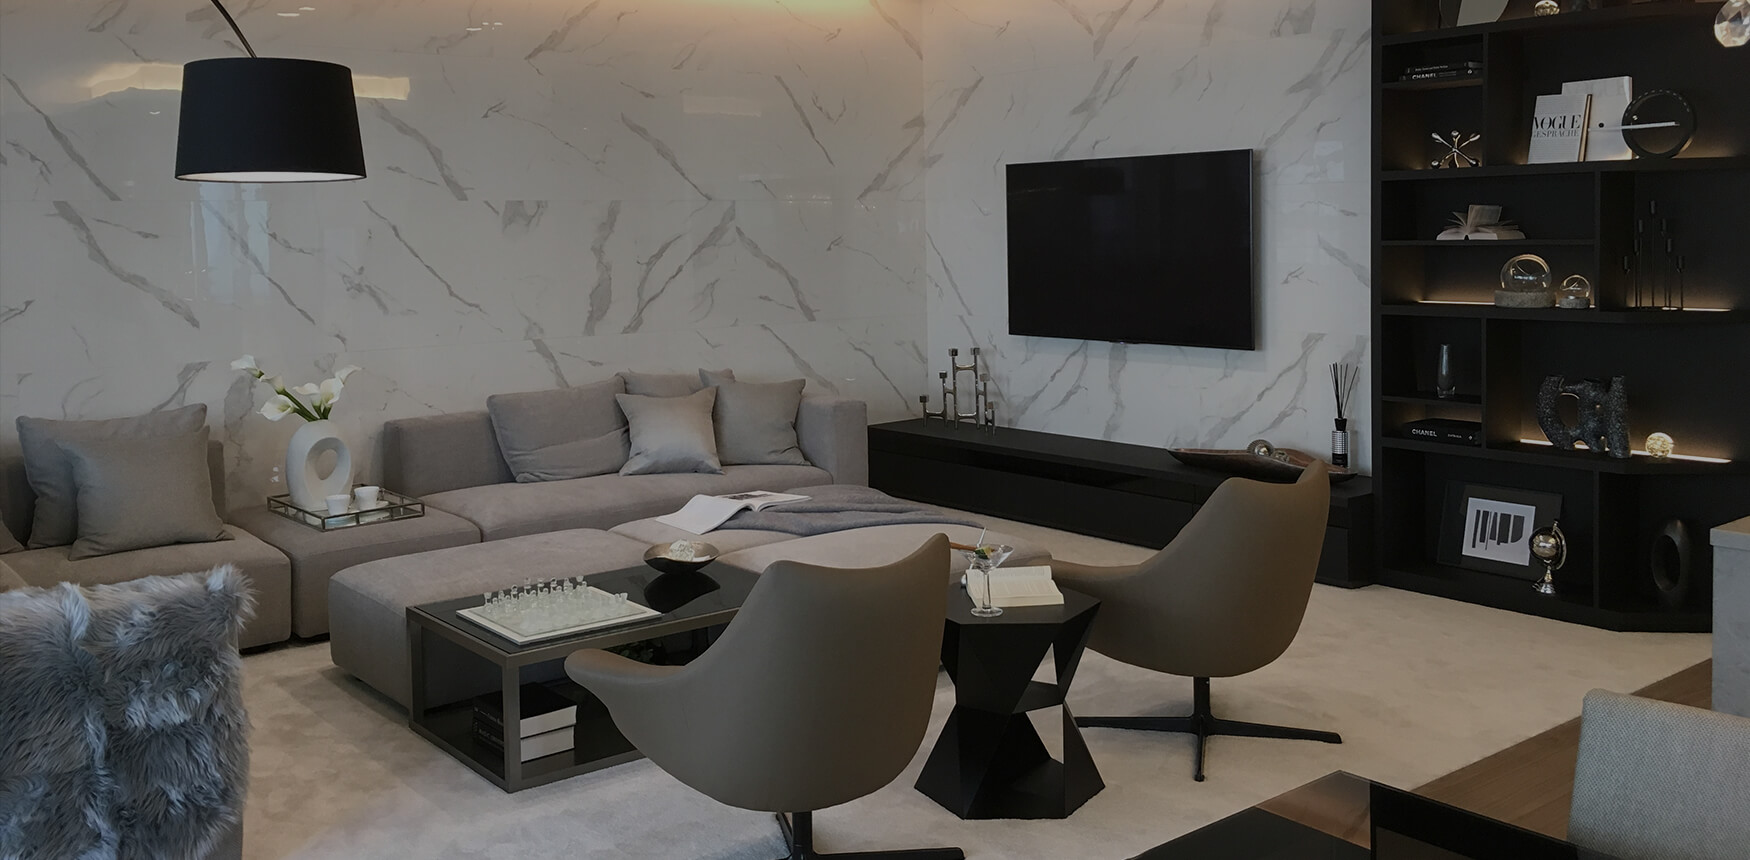 WELCOME TO URBAN INTERIOR STYLE